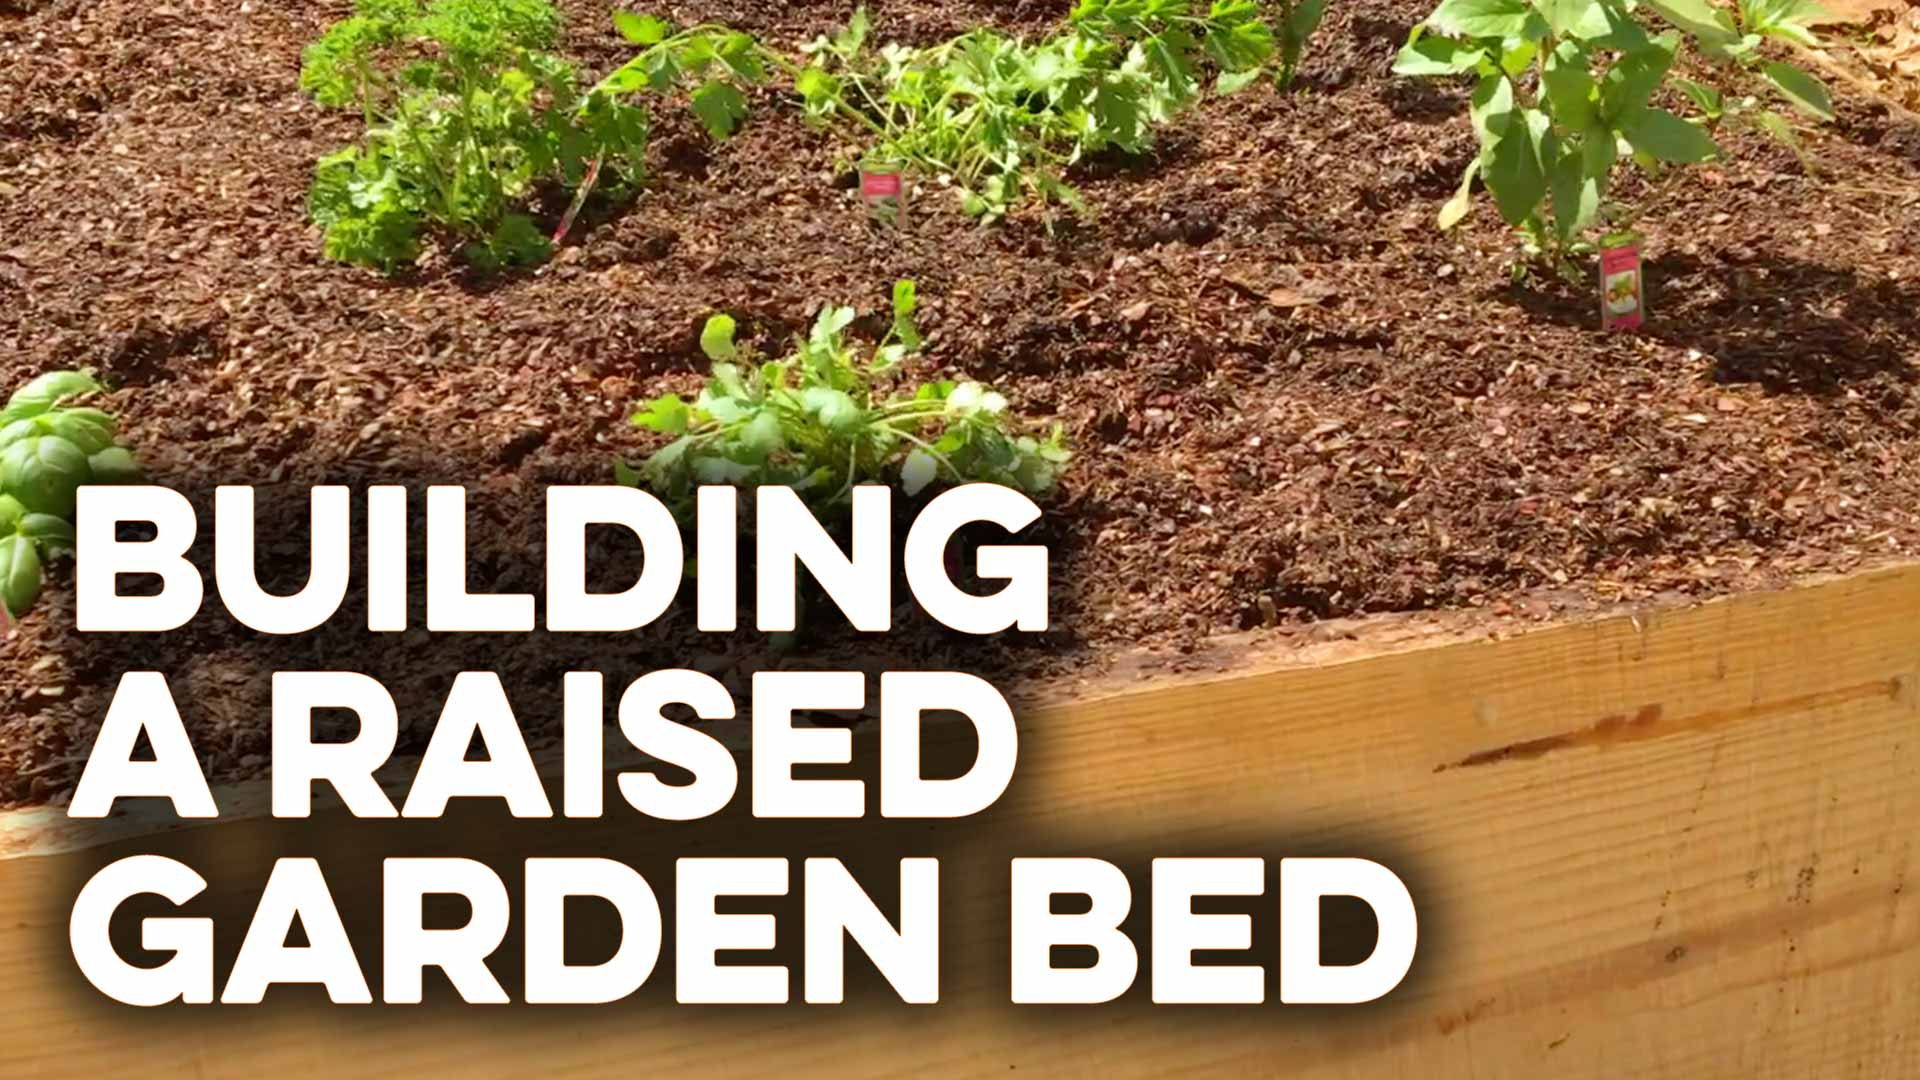 Building a raised garden bed with wood sides from a pine tree